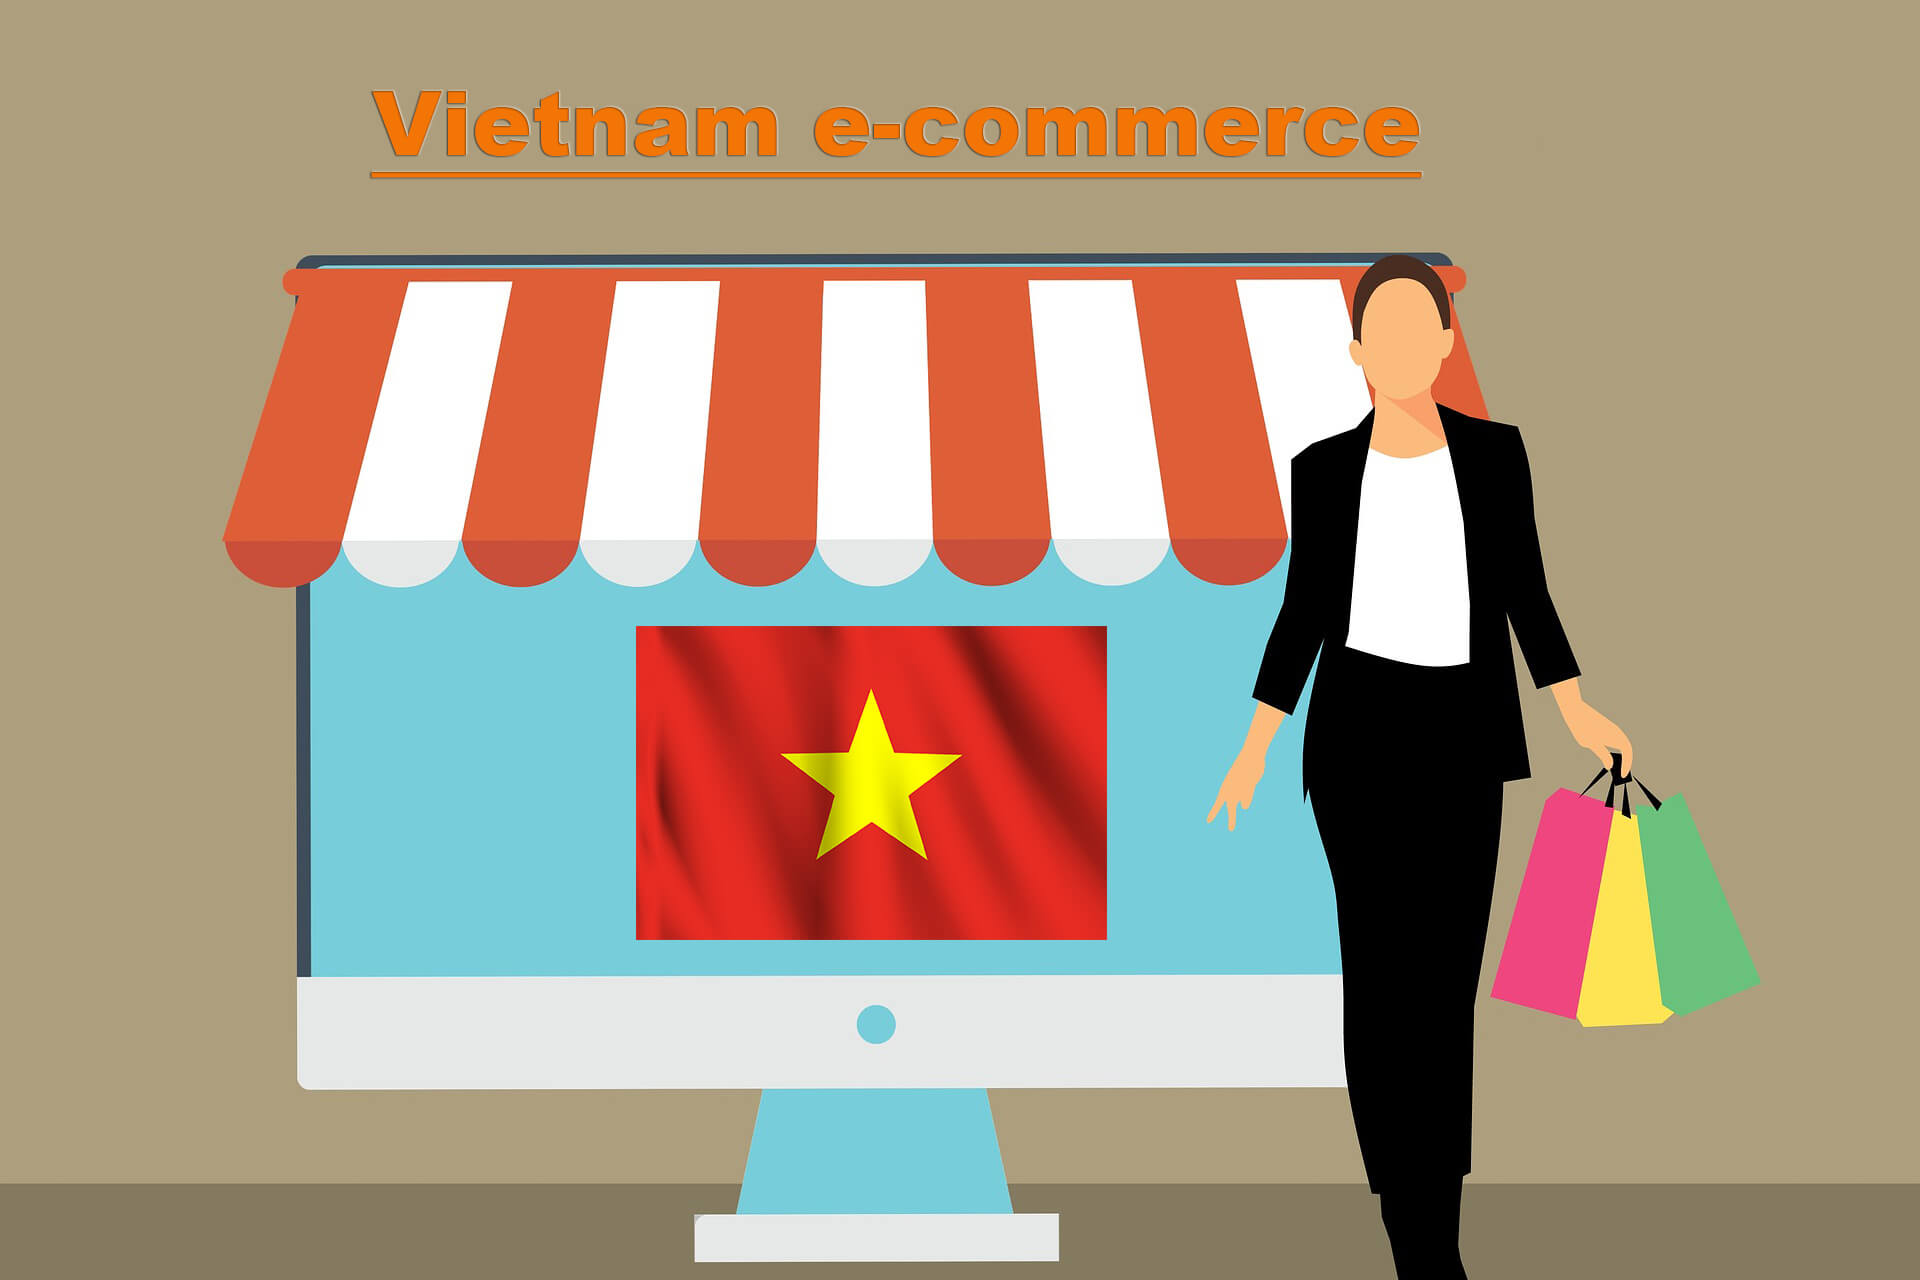 vietnam_e-commerce (1)